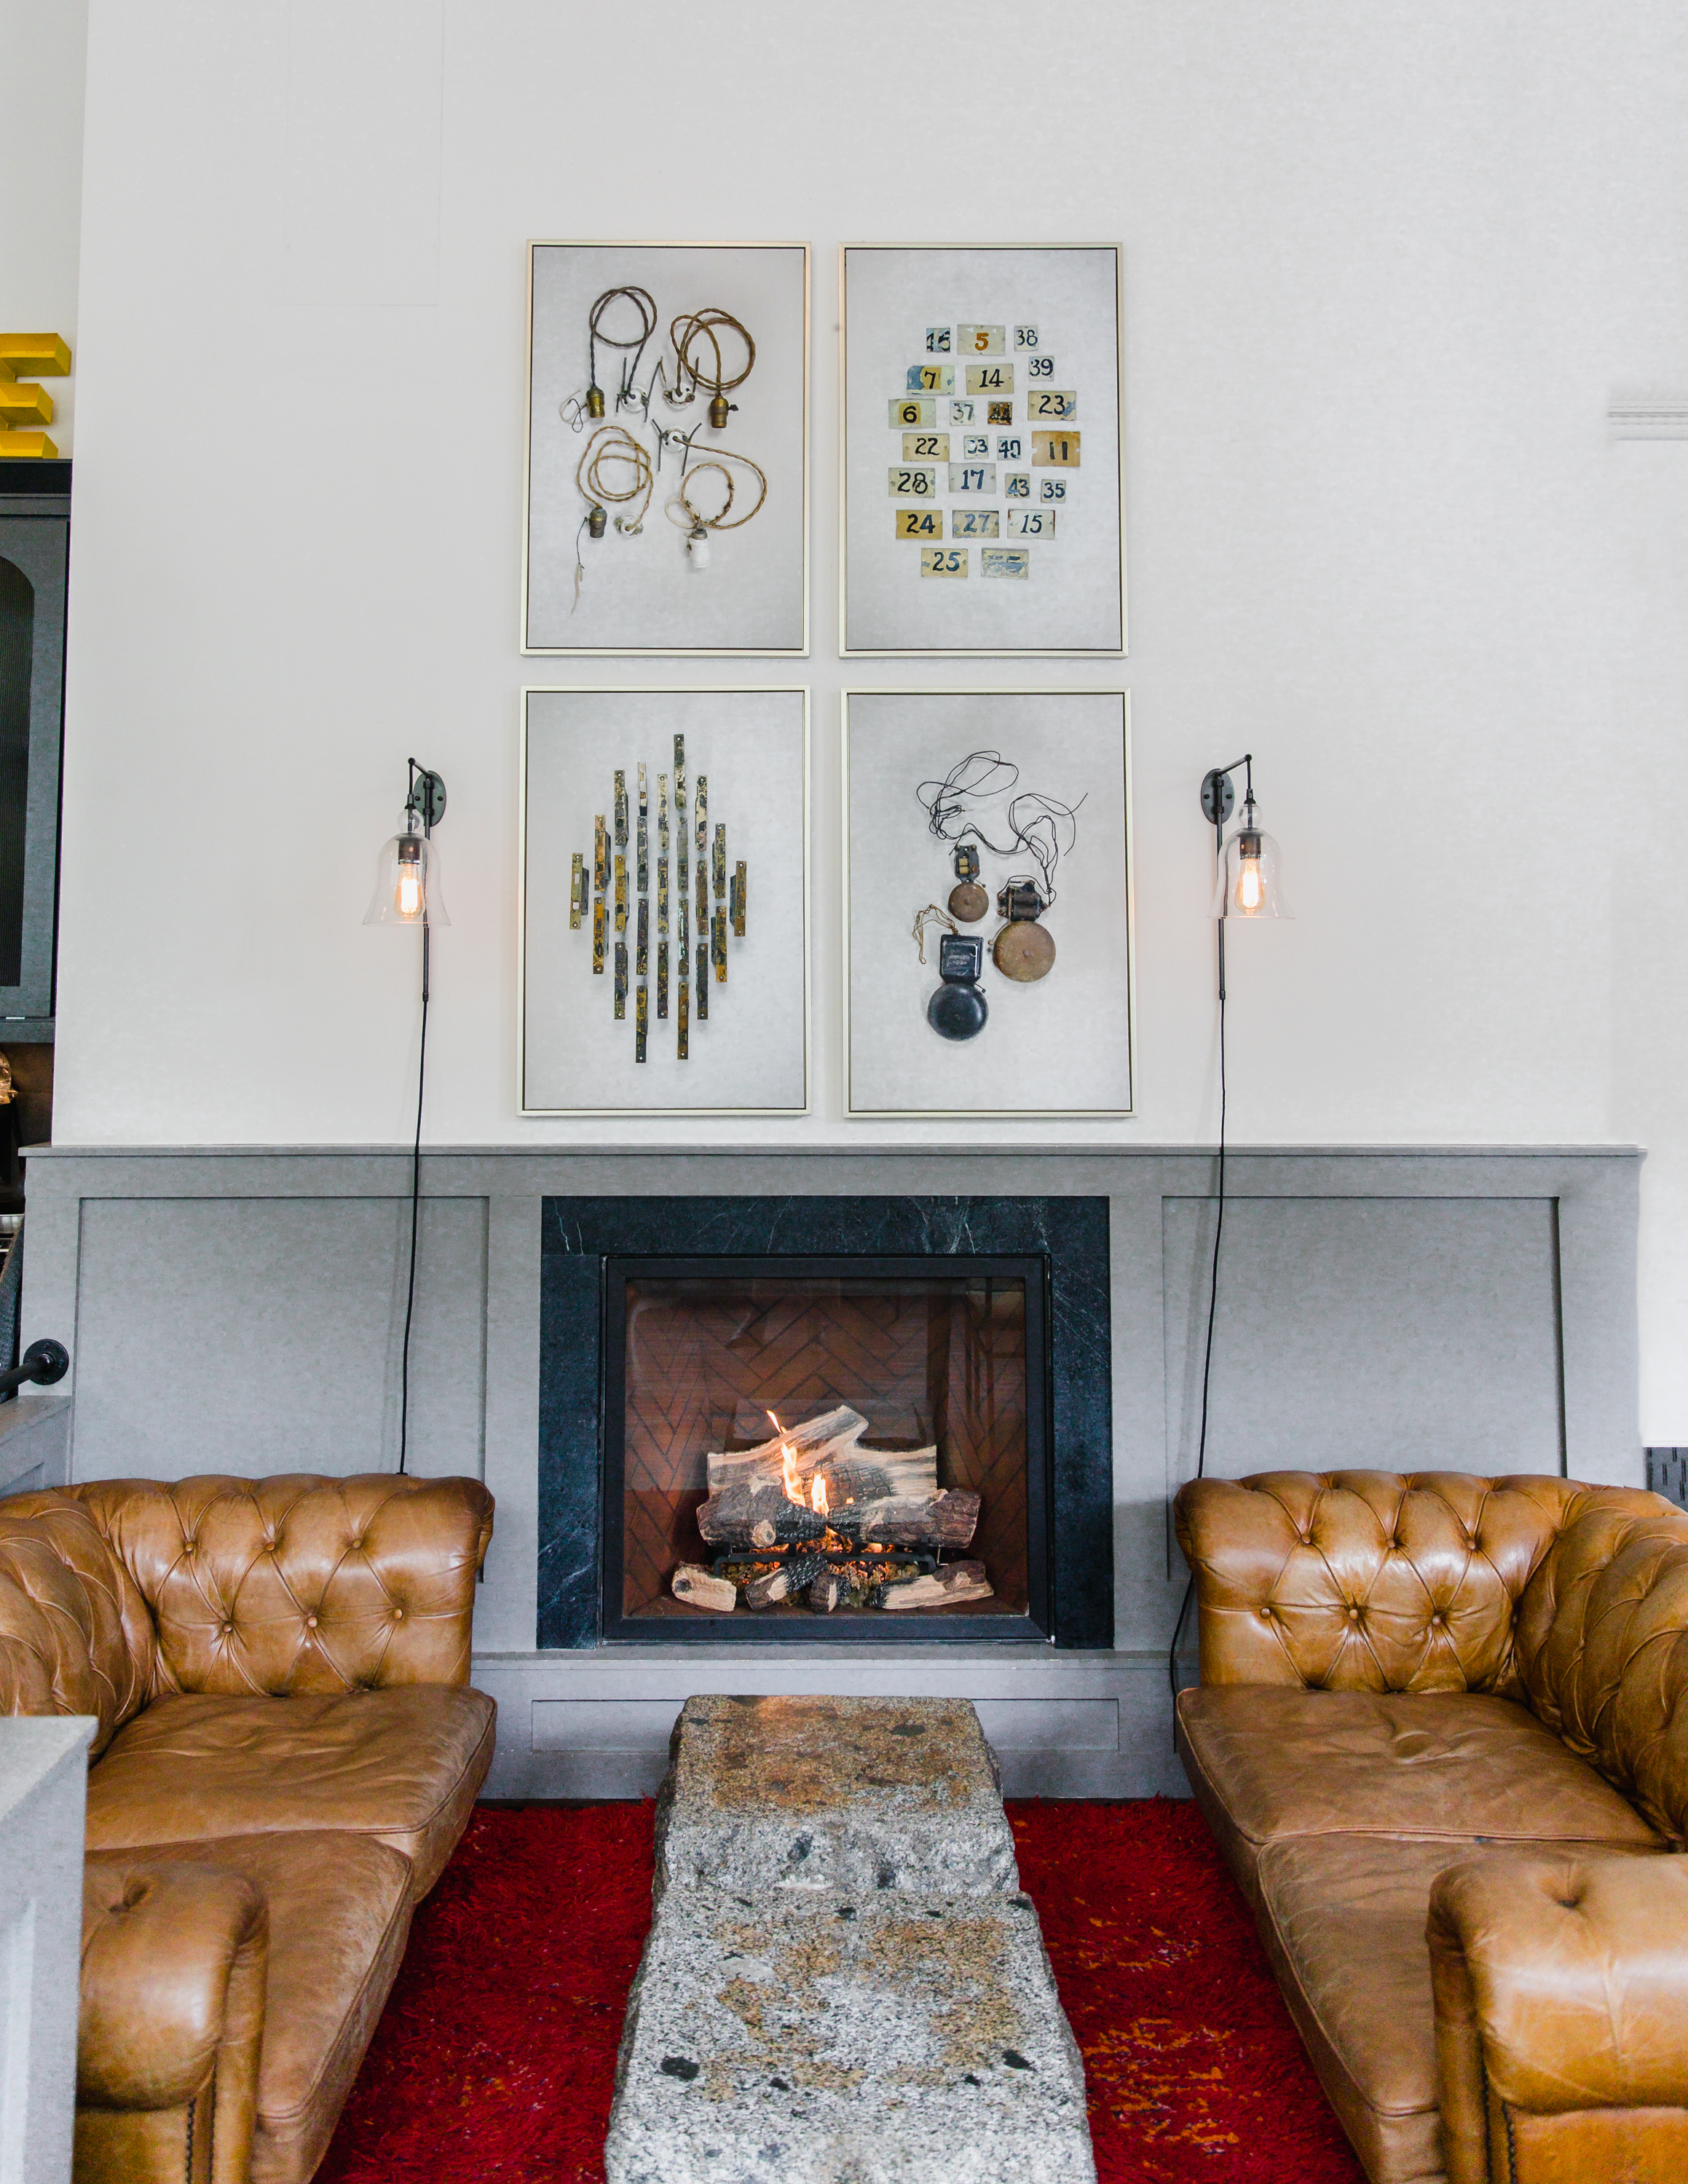 5. The Society Hotel - A great place to cozy up next to a fireplace and sip your cup of coffee.